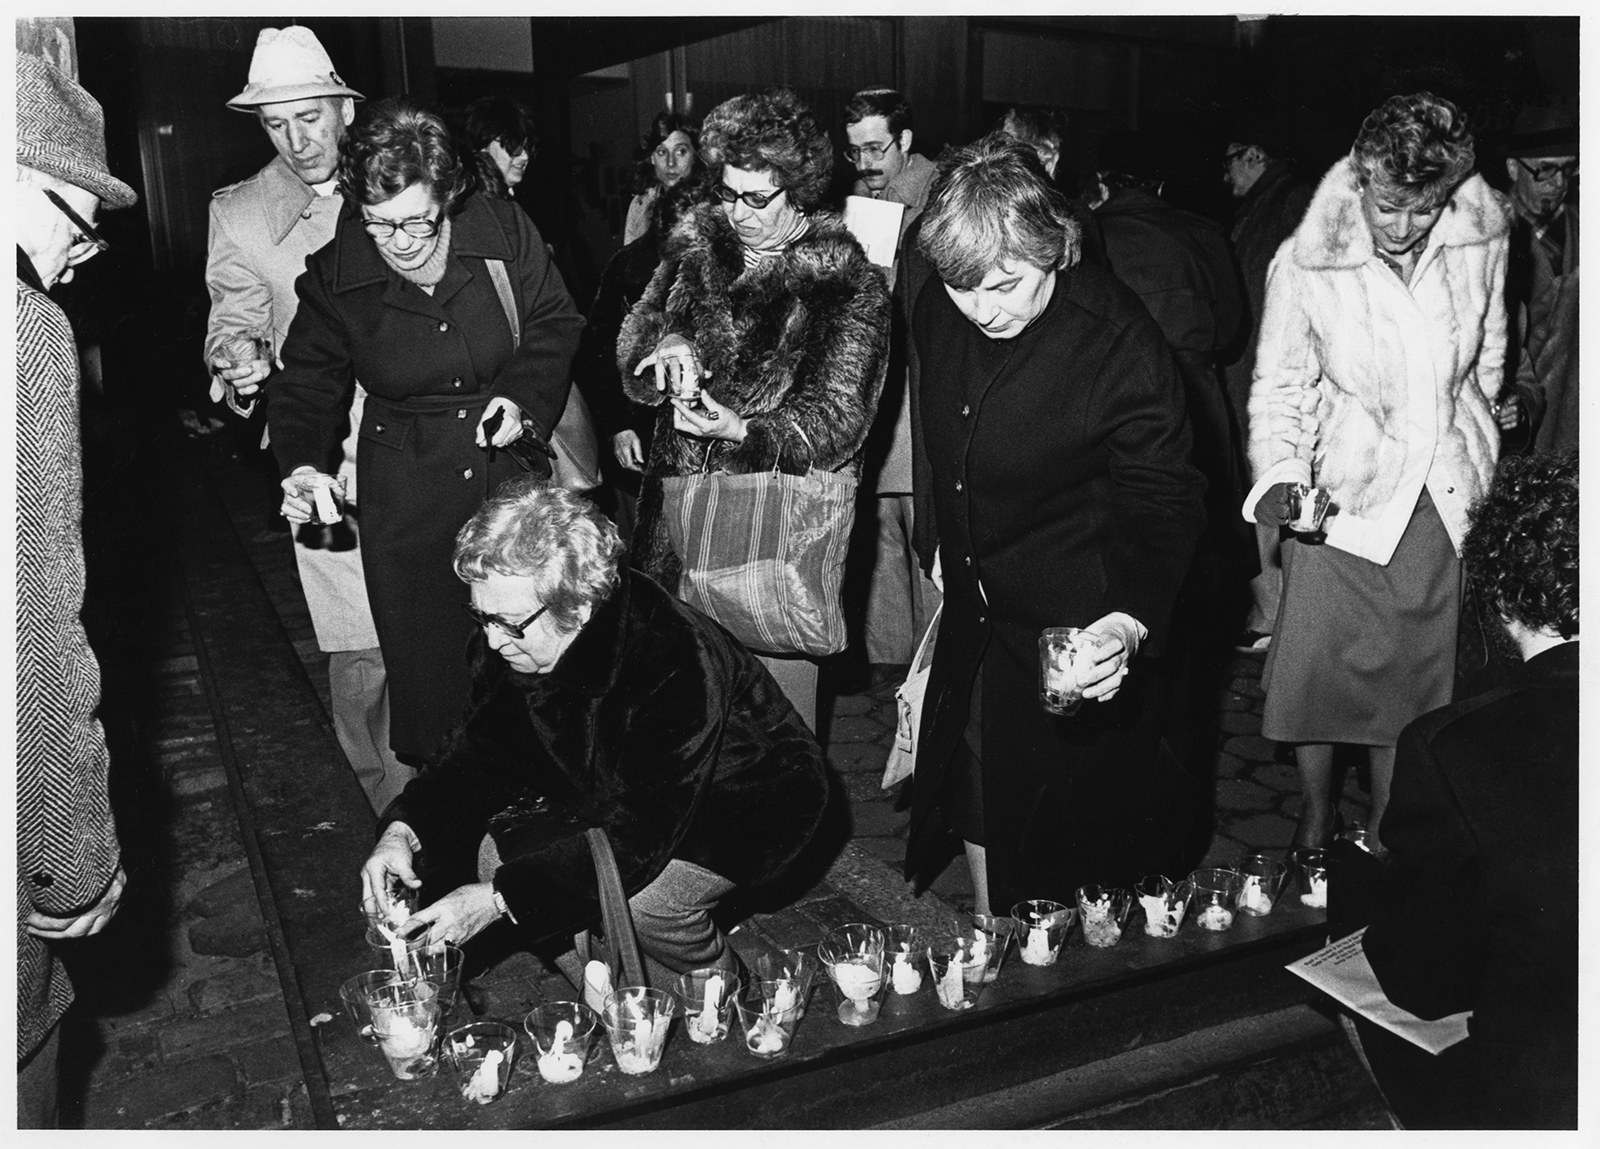 """Participants mark """"Raoul Wallenberg Day"""" by placing candles at the Isaiah Wall near the United Nations on Mar. 27, 1980, in New York. Mr. Wallenberg, a Swedish diplomat in war-time Budapest helped save nearly 100,000 Hungarian Jews from the Nazis during World War II. Wallenberg was taken prisoner by the Soviet Army in 1945, and reported dead in 1947. Many groups, including the Anti-Defamation League of B'nai B'rith and the U.S. Free Raoul Wallenberg Committee, believed reports that he languished in a Russian prison for years past 1947. RNS archive photo by Odette Lupis. Photo courtesy of the Presbyterian Historical Society."""